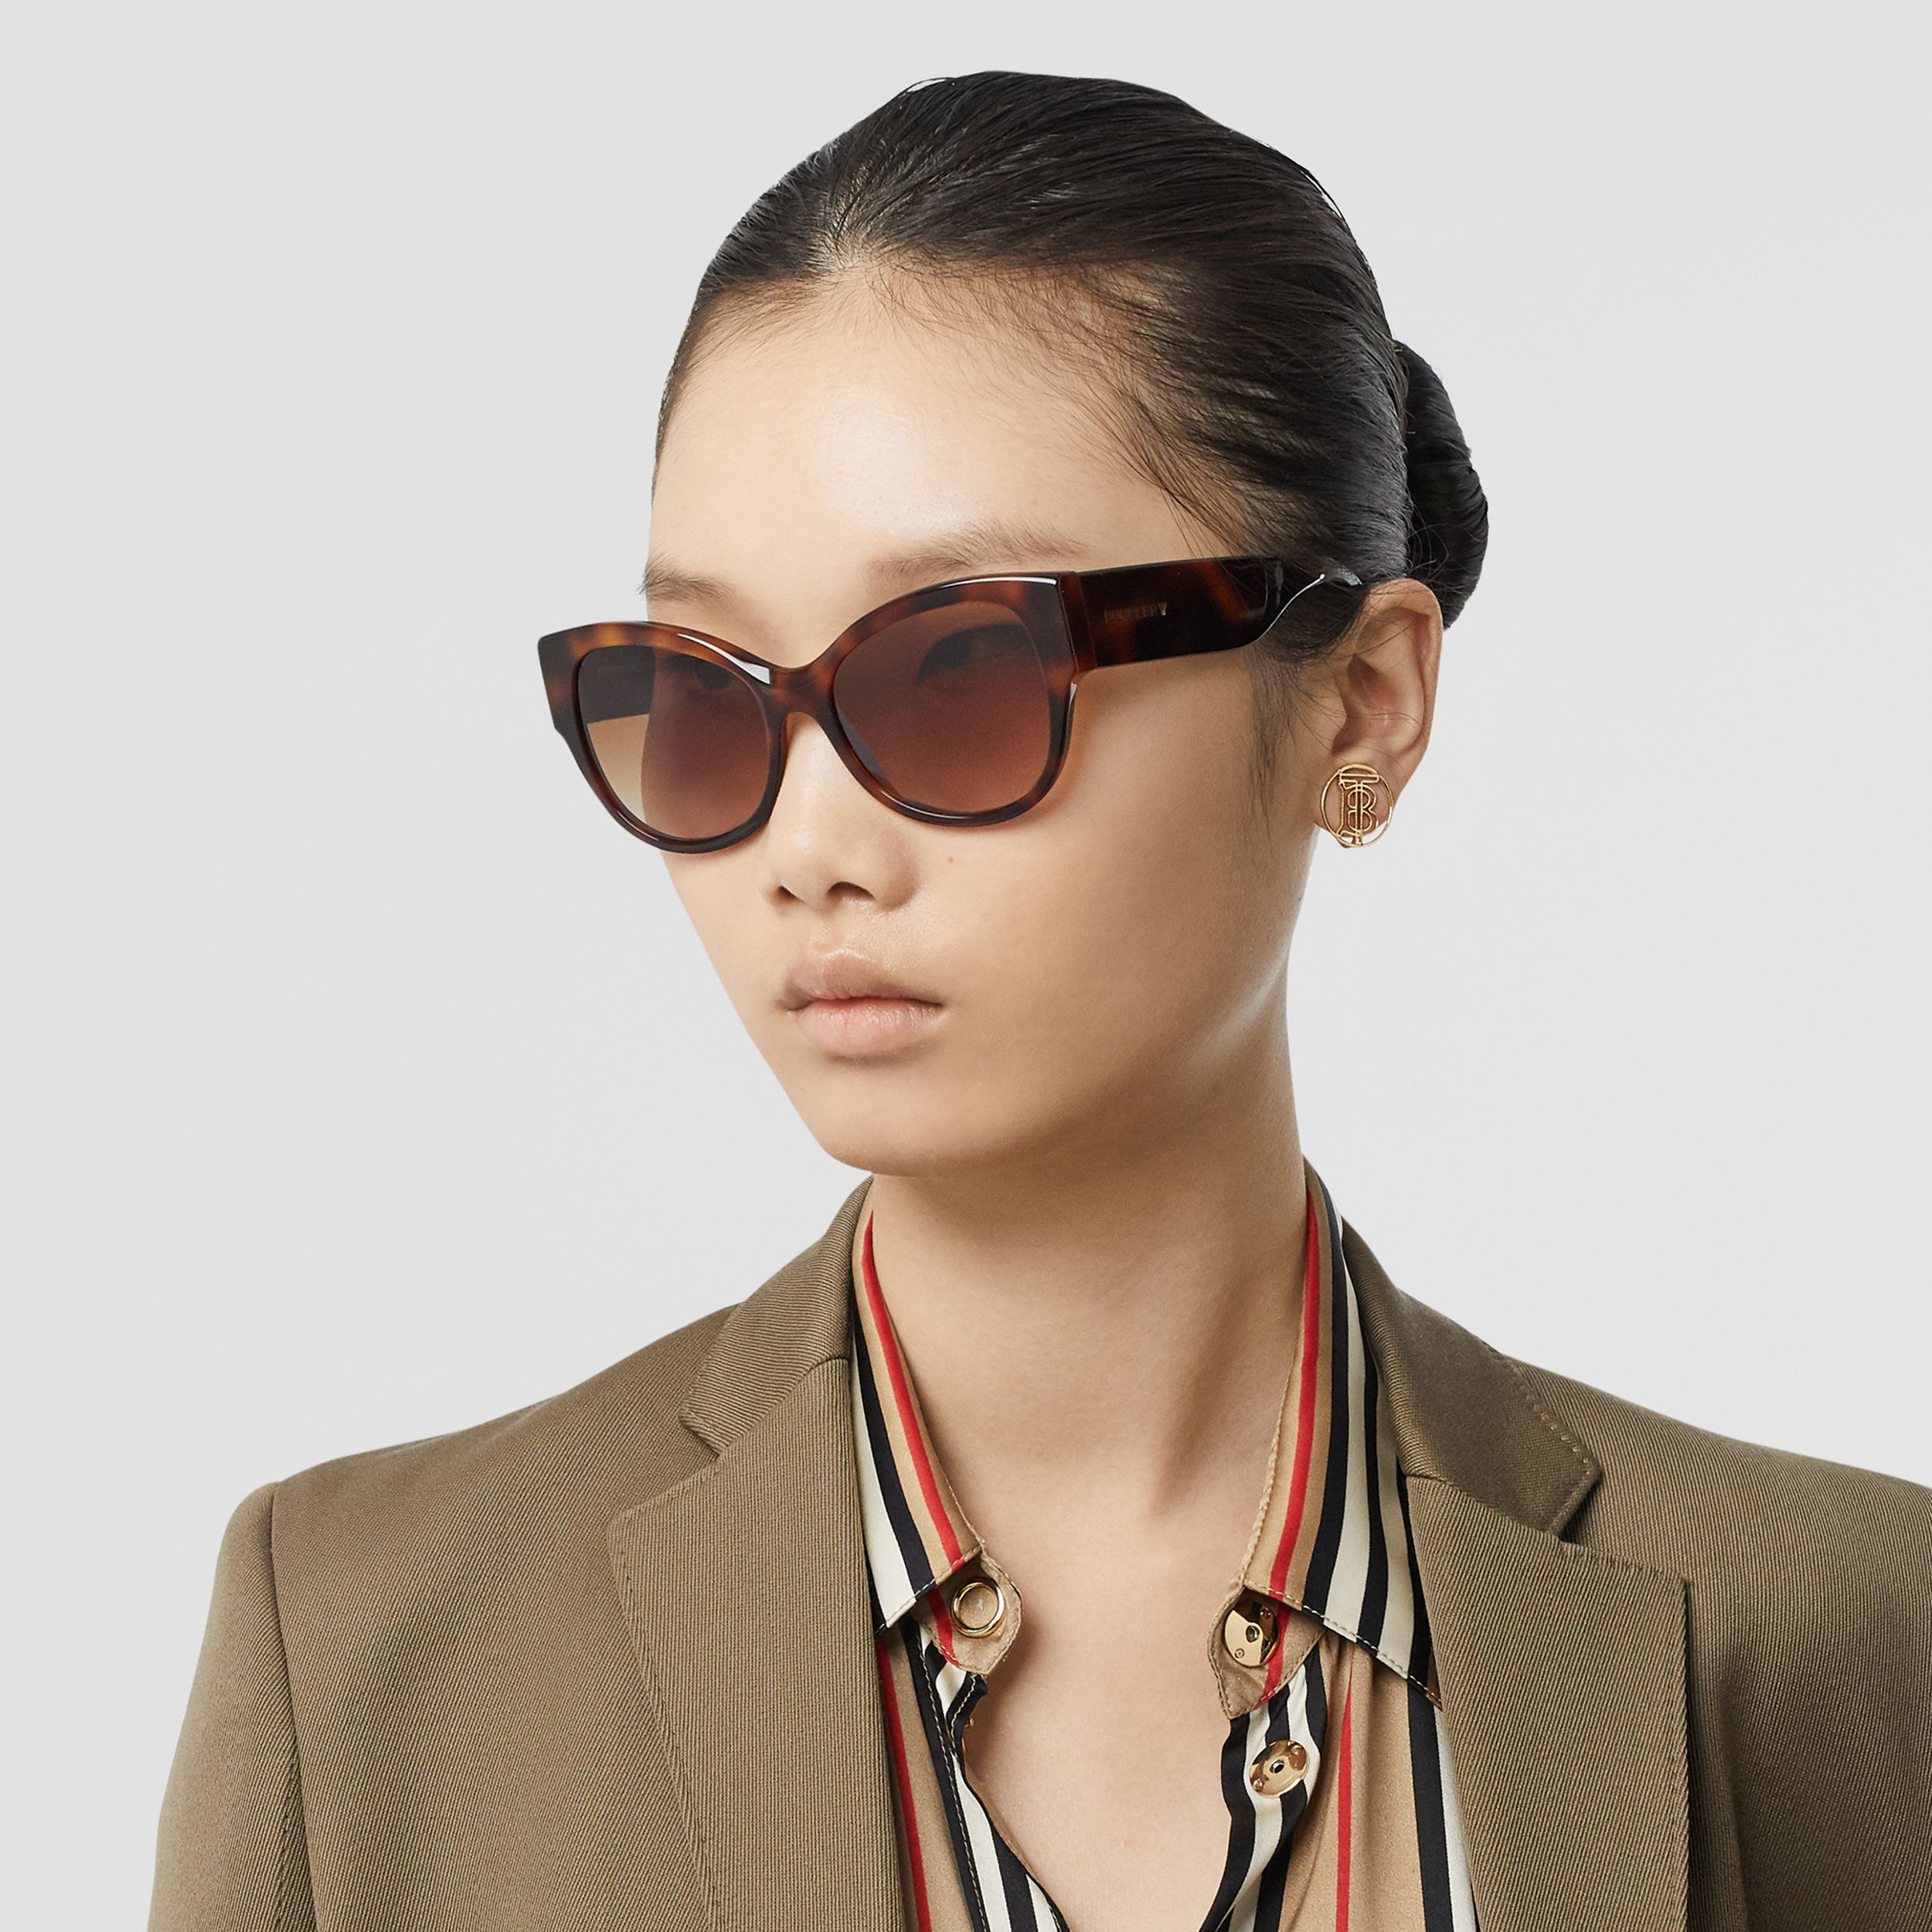 Butterfly Frame Sunglasses in Amber Tortoiseshell - Women | Burberry United Kingdom - 3